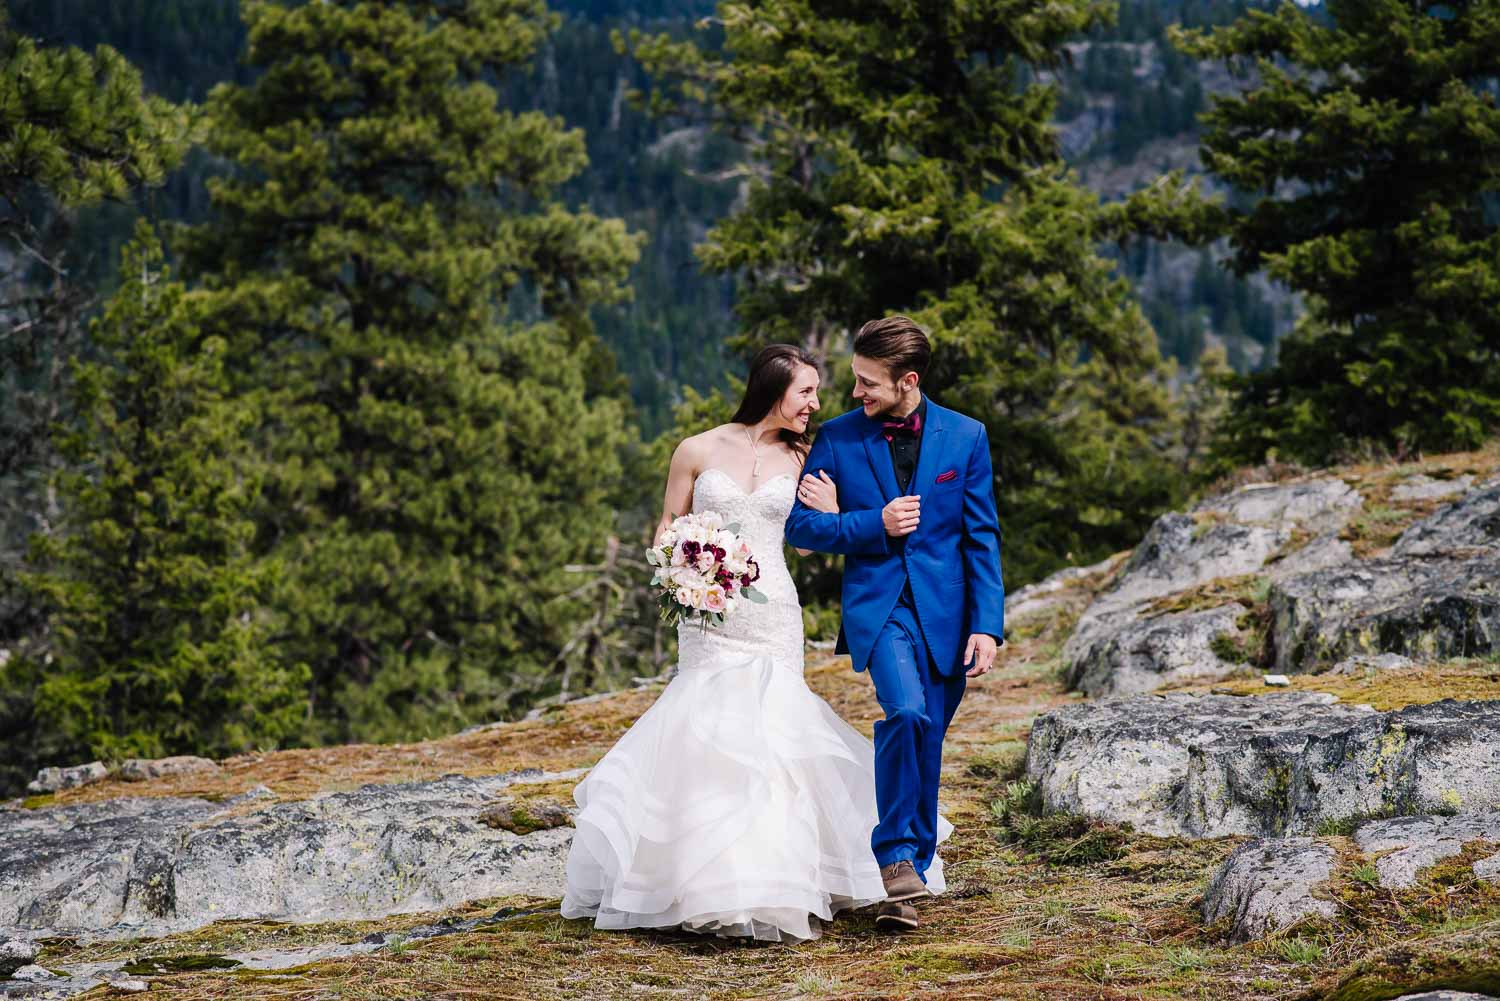 Payette Lake is an adventurous wedding venue in McCall Idaho. Couple walking on rocks with pine trees behind them.